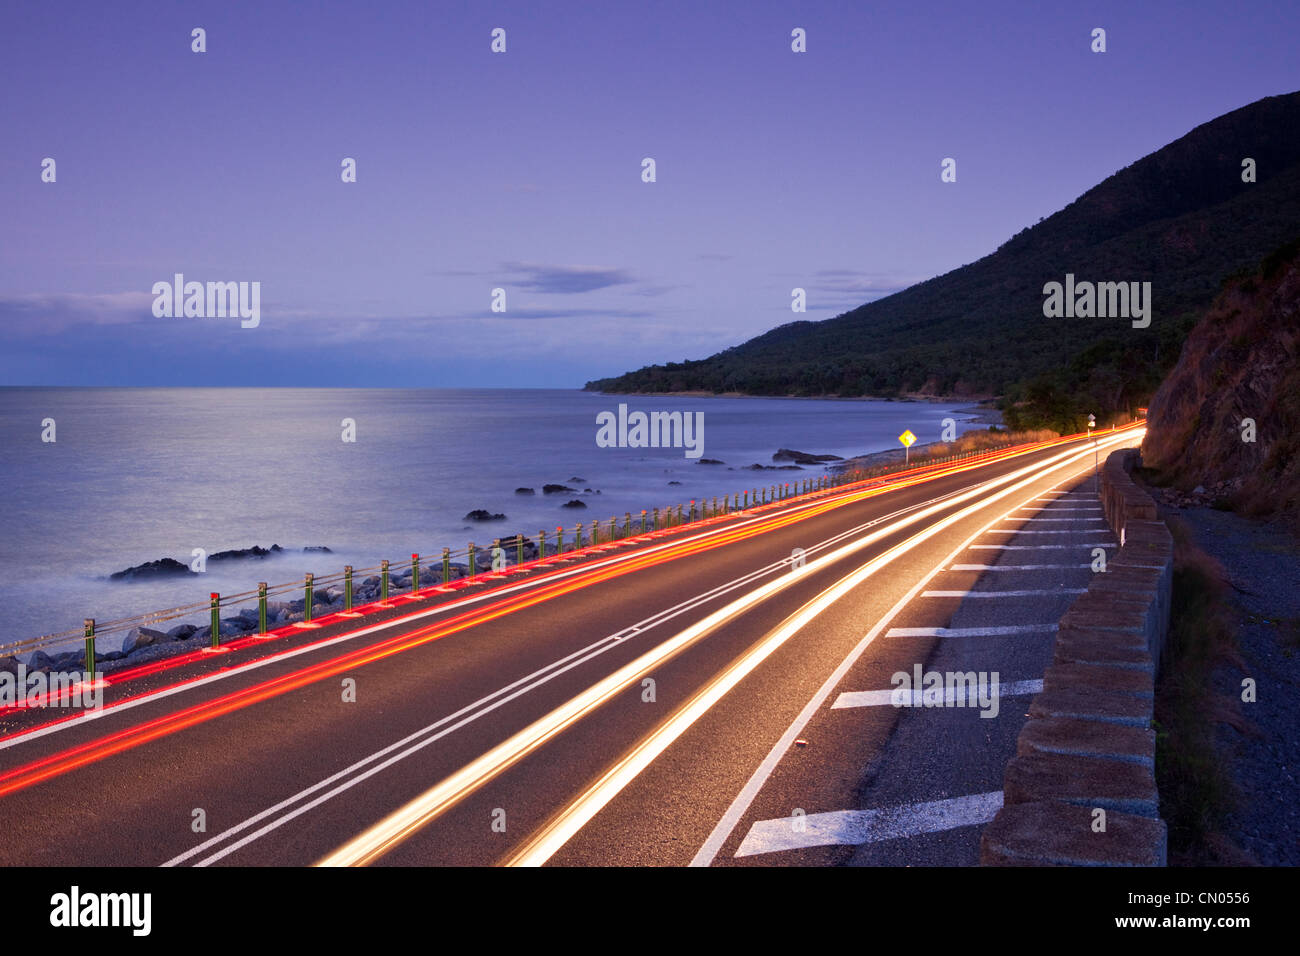 Car light trails on coastal highway.  Captain Cook Highway between Port Douglas and Cairns, Queensland, Australia - Stock Image